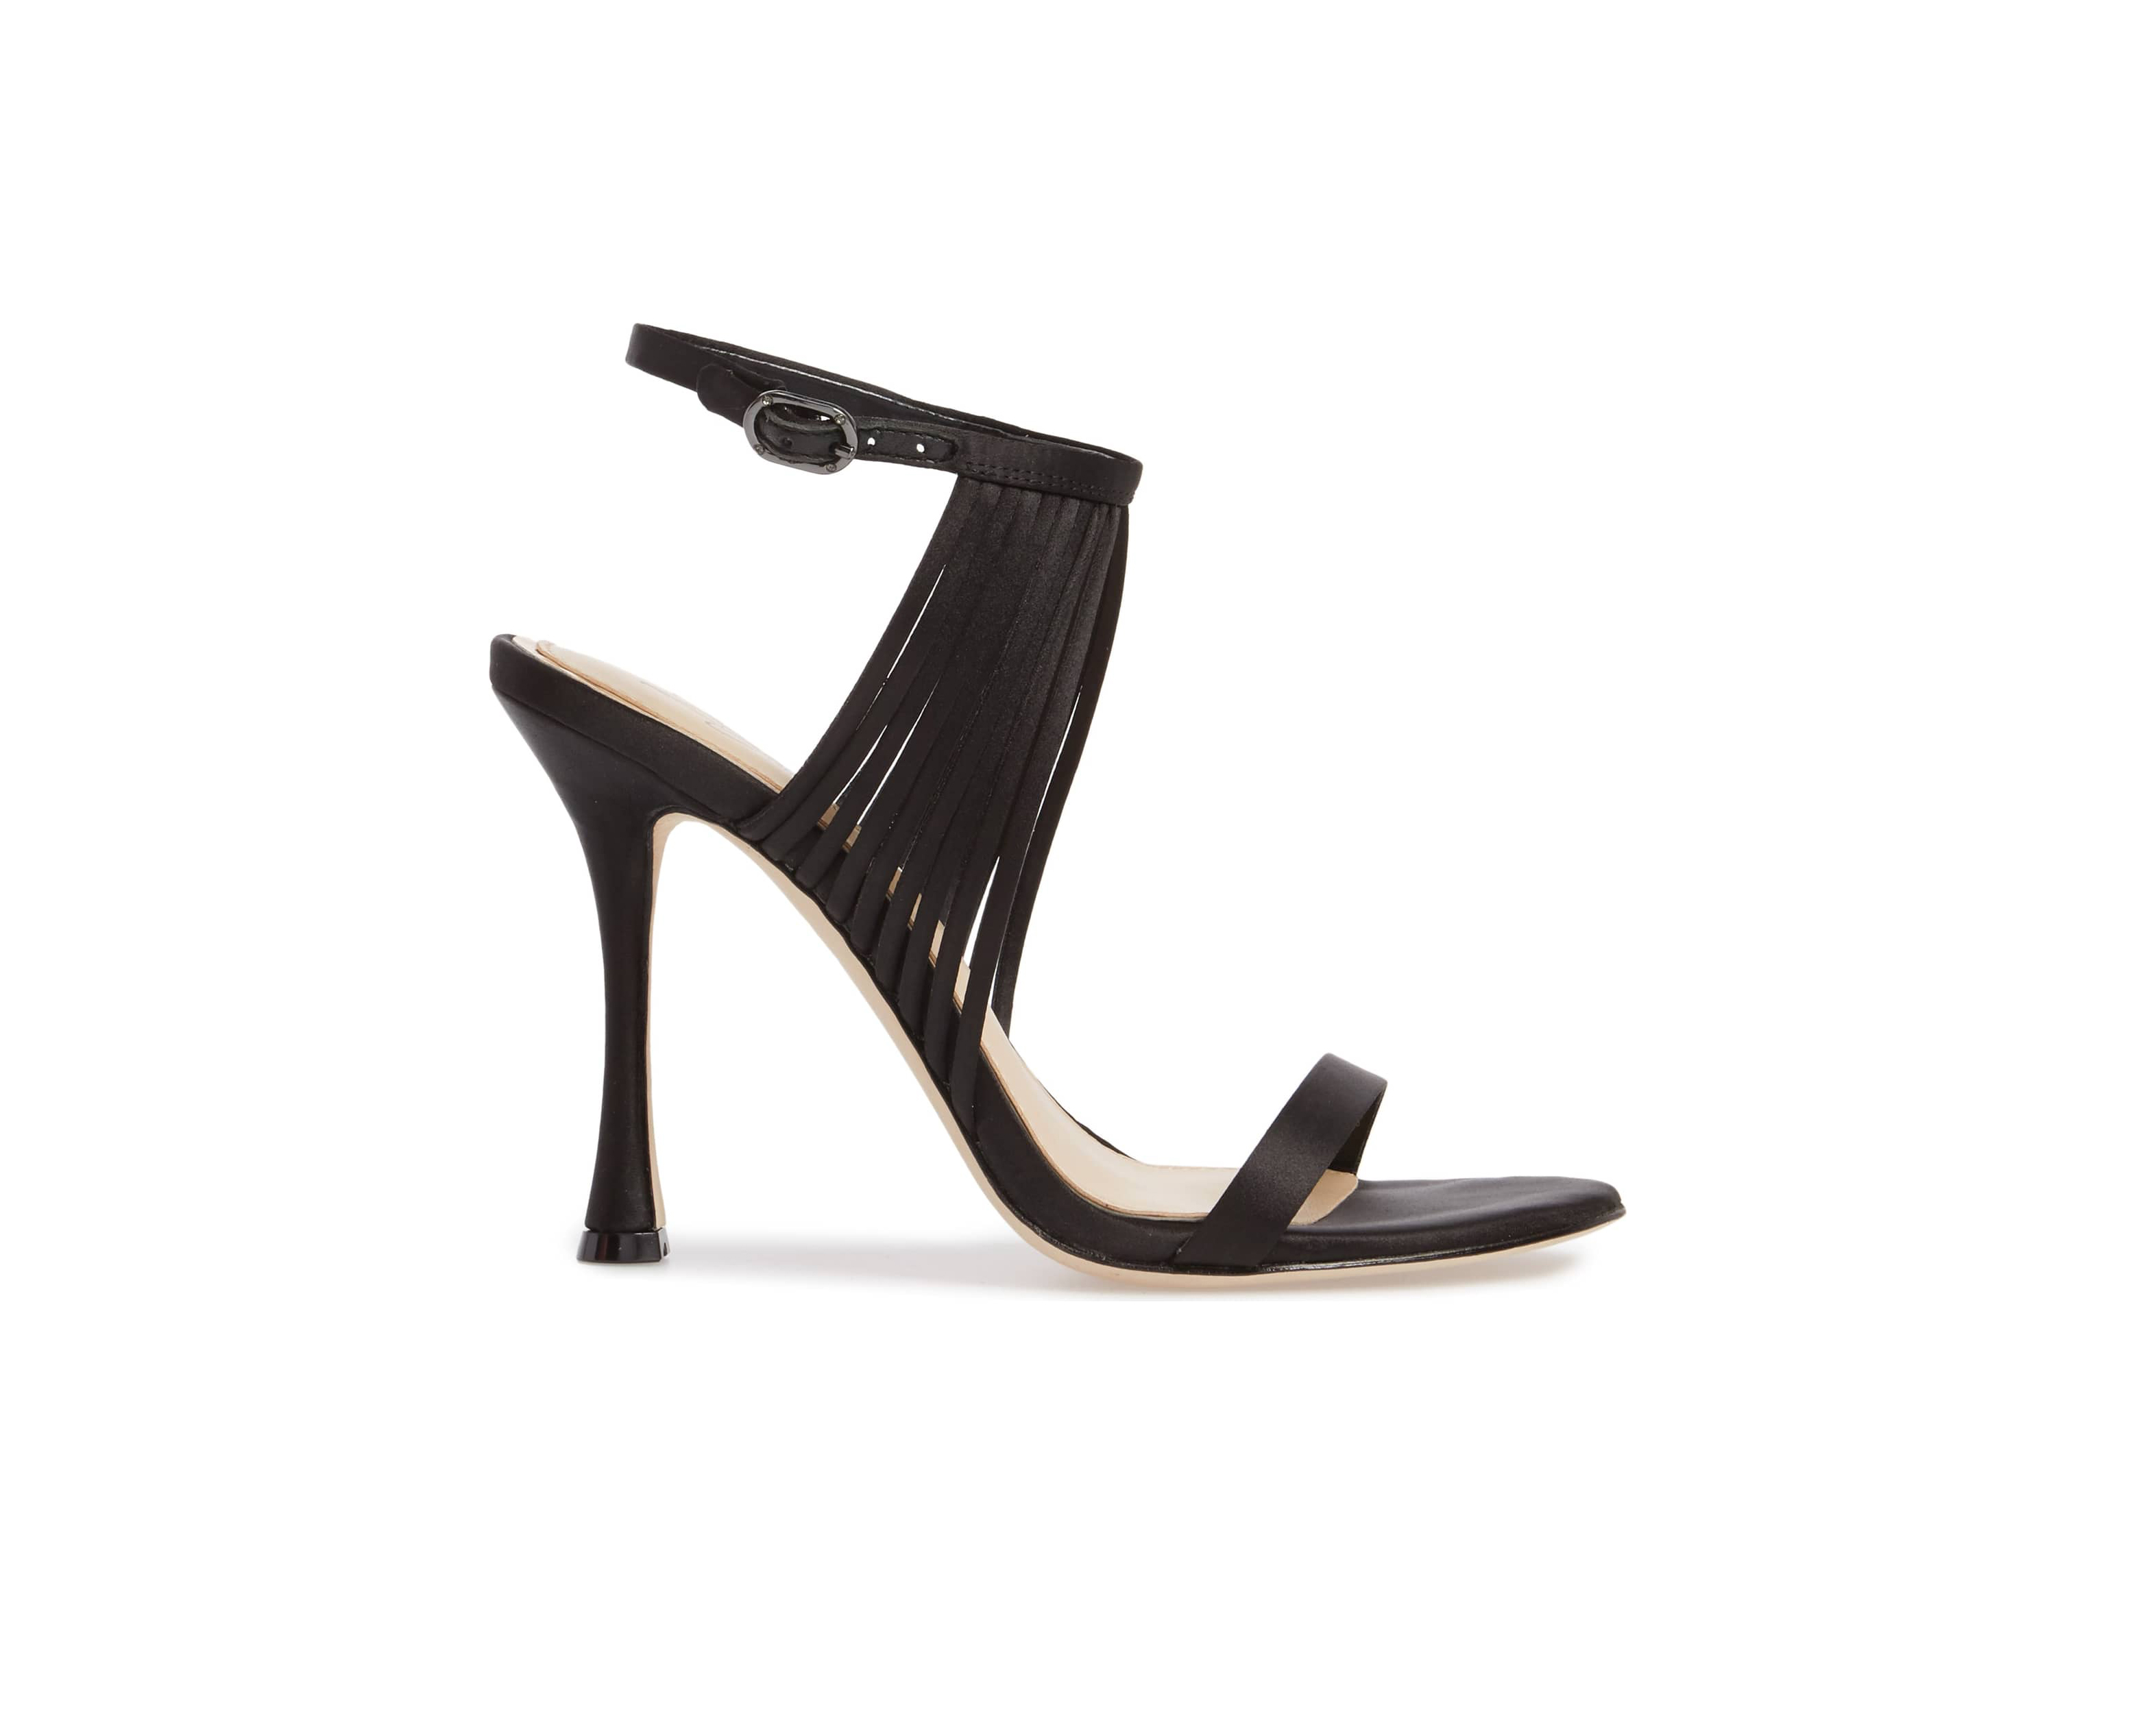 638b000cb We Have Fallen Head Over Heels in Love With These Satin Sandals. By  Marquaysa Battle. imagine by vince camuto. Nordstrom